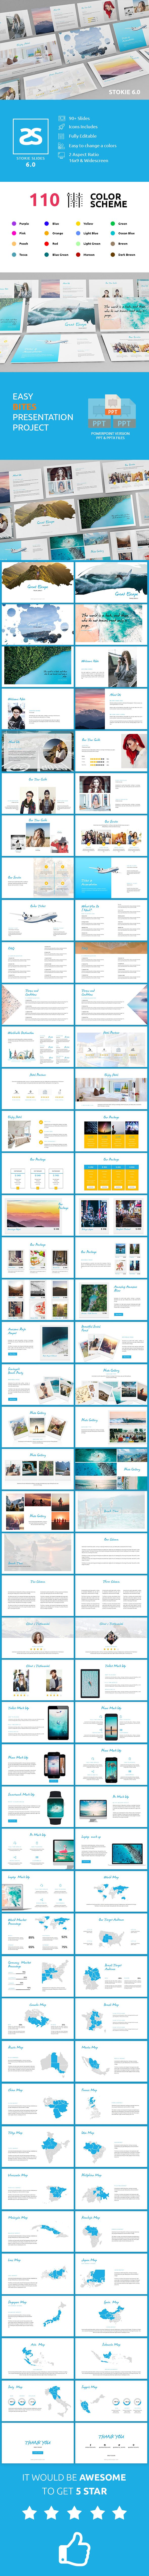 Travel Agency Powerpoint Template 6.0 - Creative #PowerPoint Templates